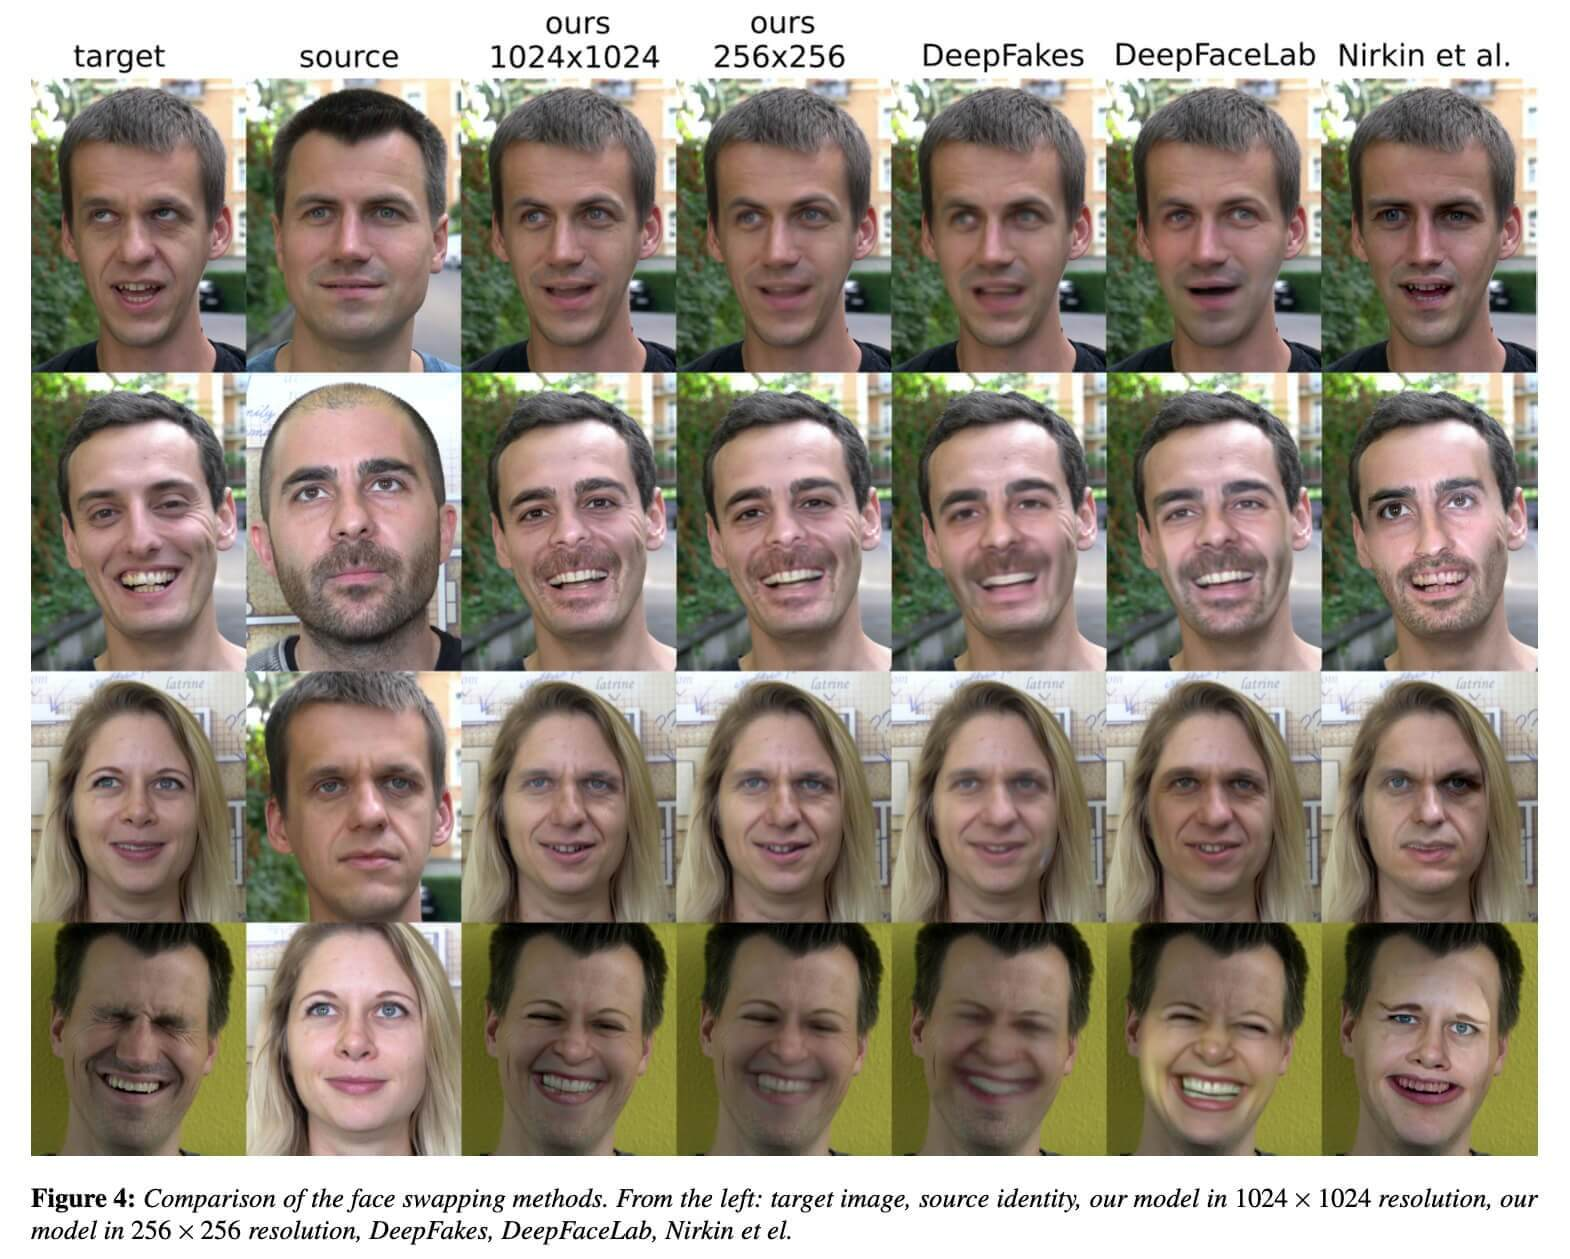 Disney developed face-swapping tech better than most deepfakes out there